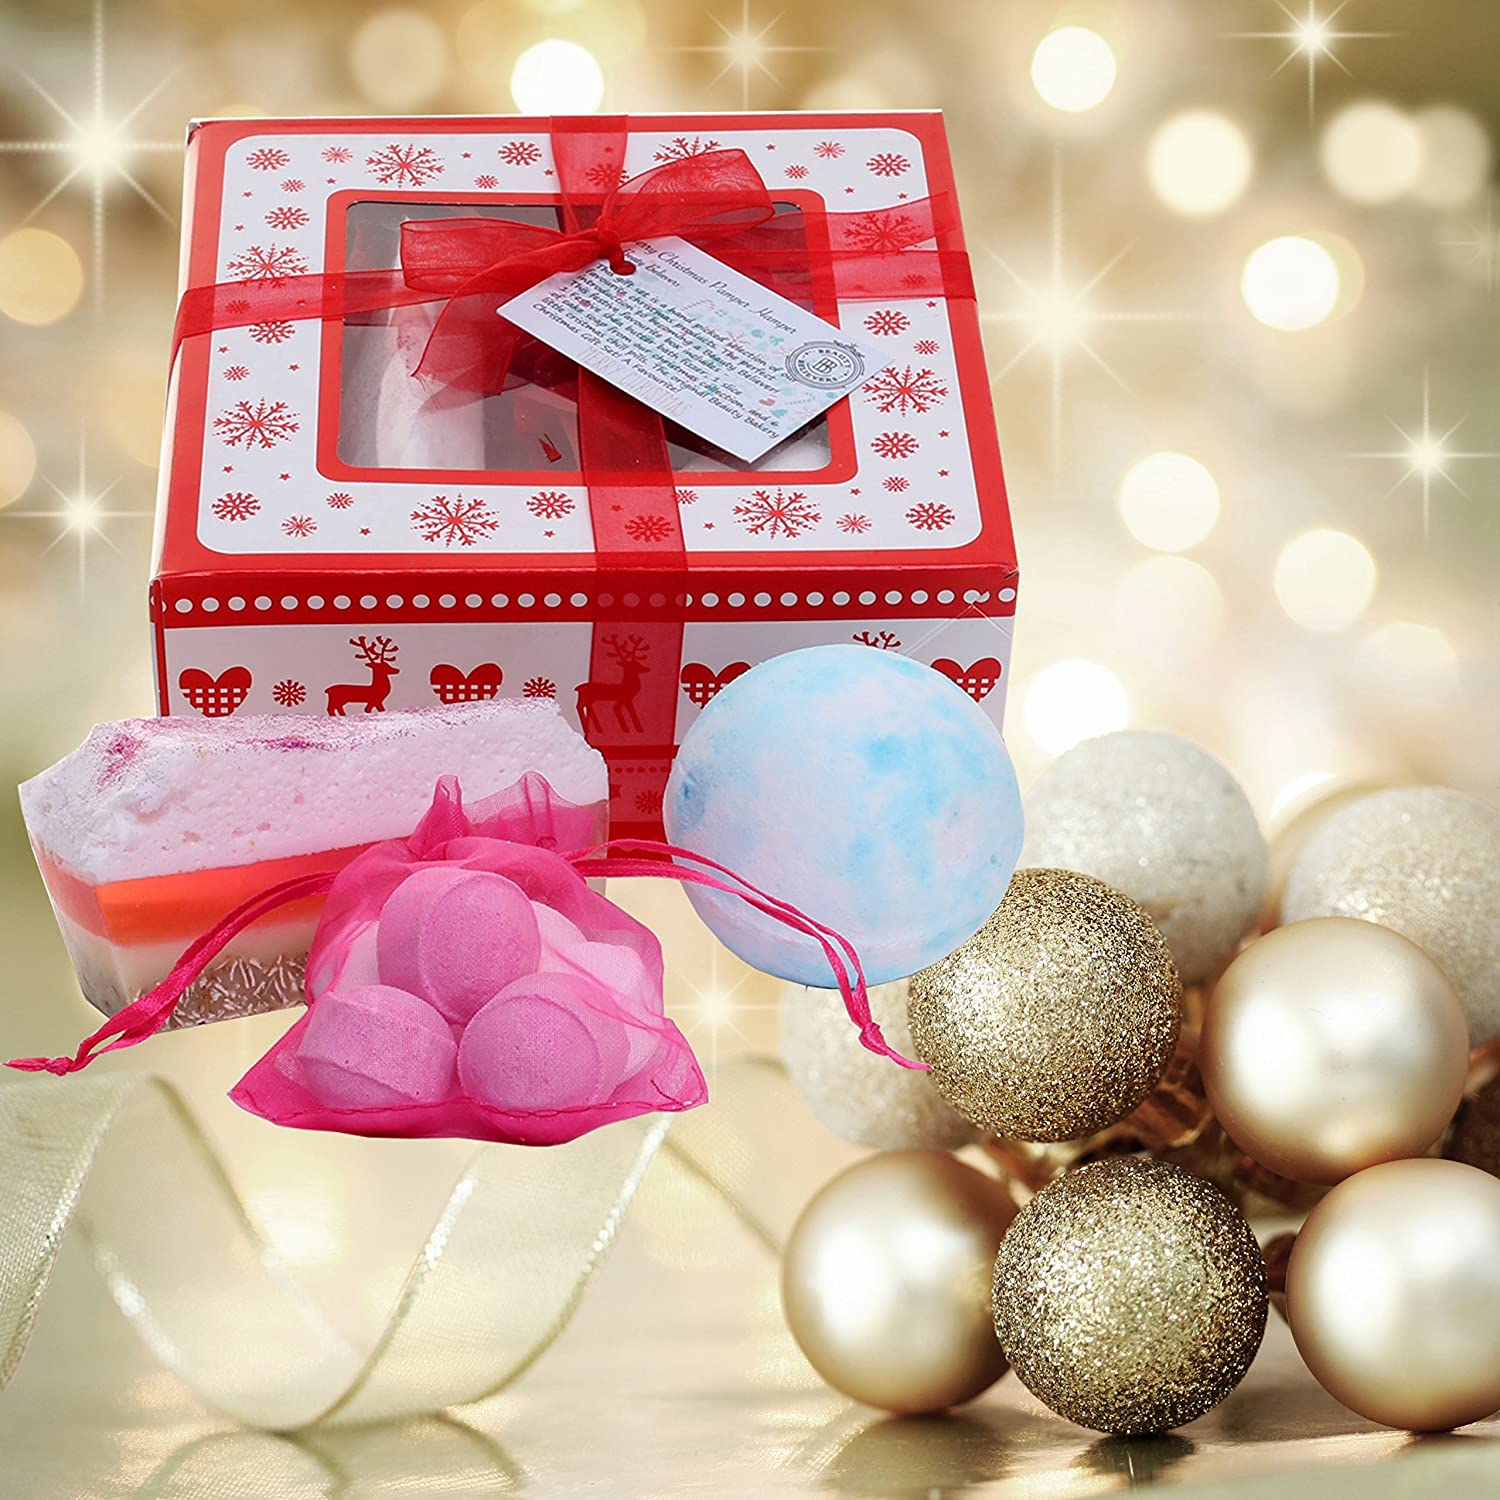 Handmade Bathbomb Pamper Hamper Gift Box with Christmas Tag and Red ...